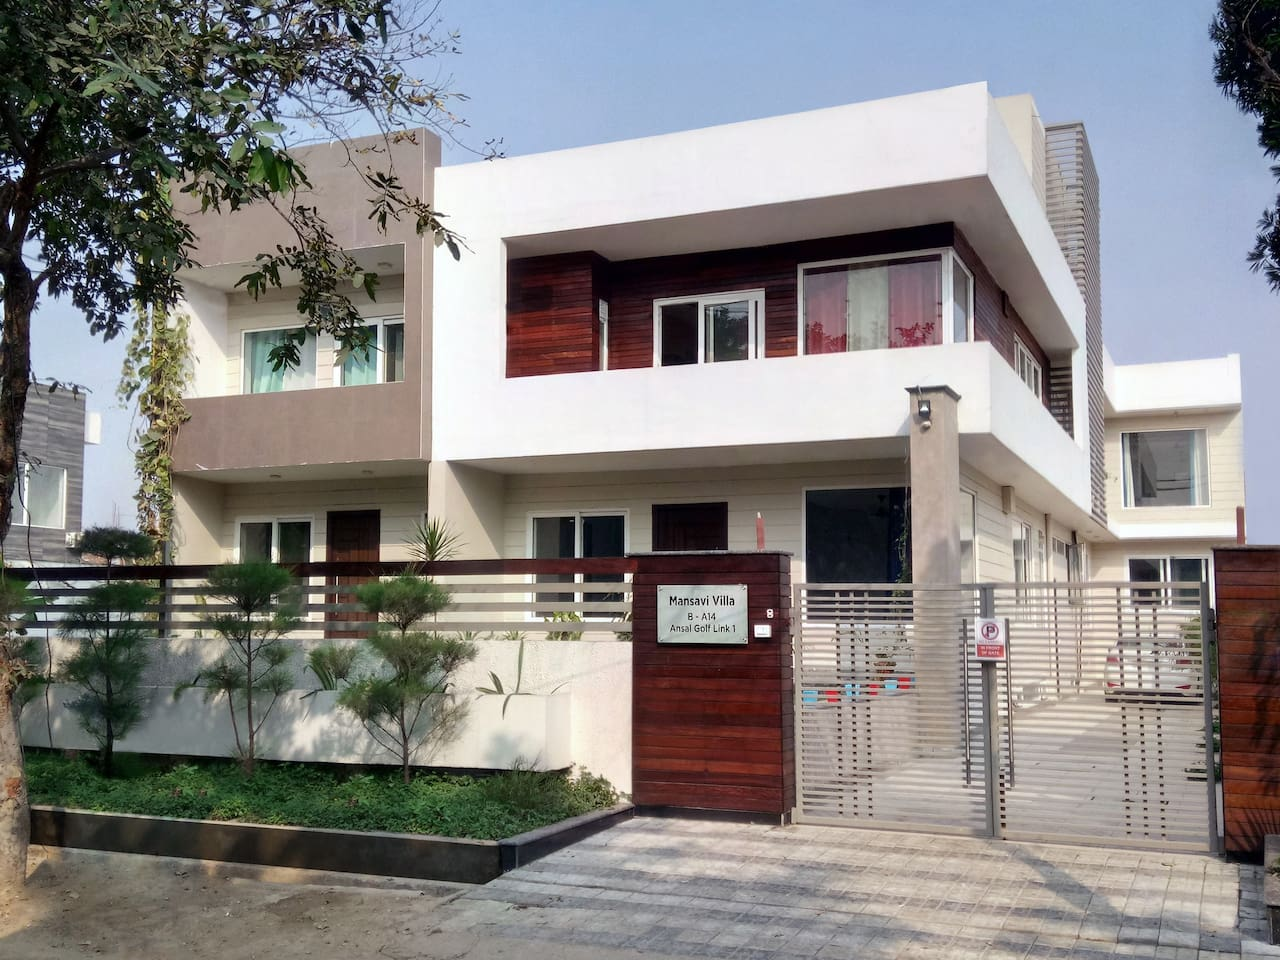 Mansavi Villa is located at very strategic location, easily reachable and just 600 meter from India Expo centre Greater Noida and offers guest a very peaceful and pleasureful stay with good ,tasty ,hygienic home made food with all amenities.